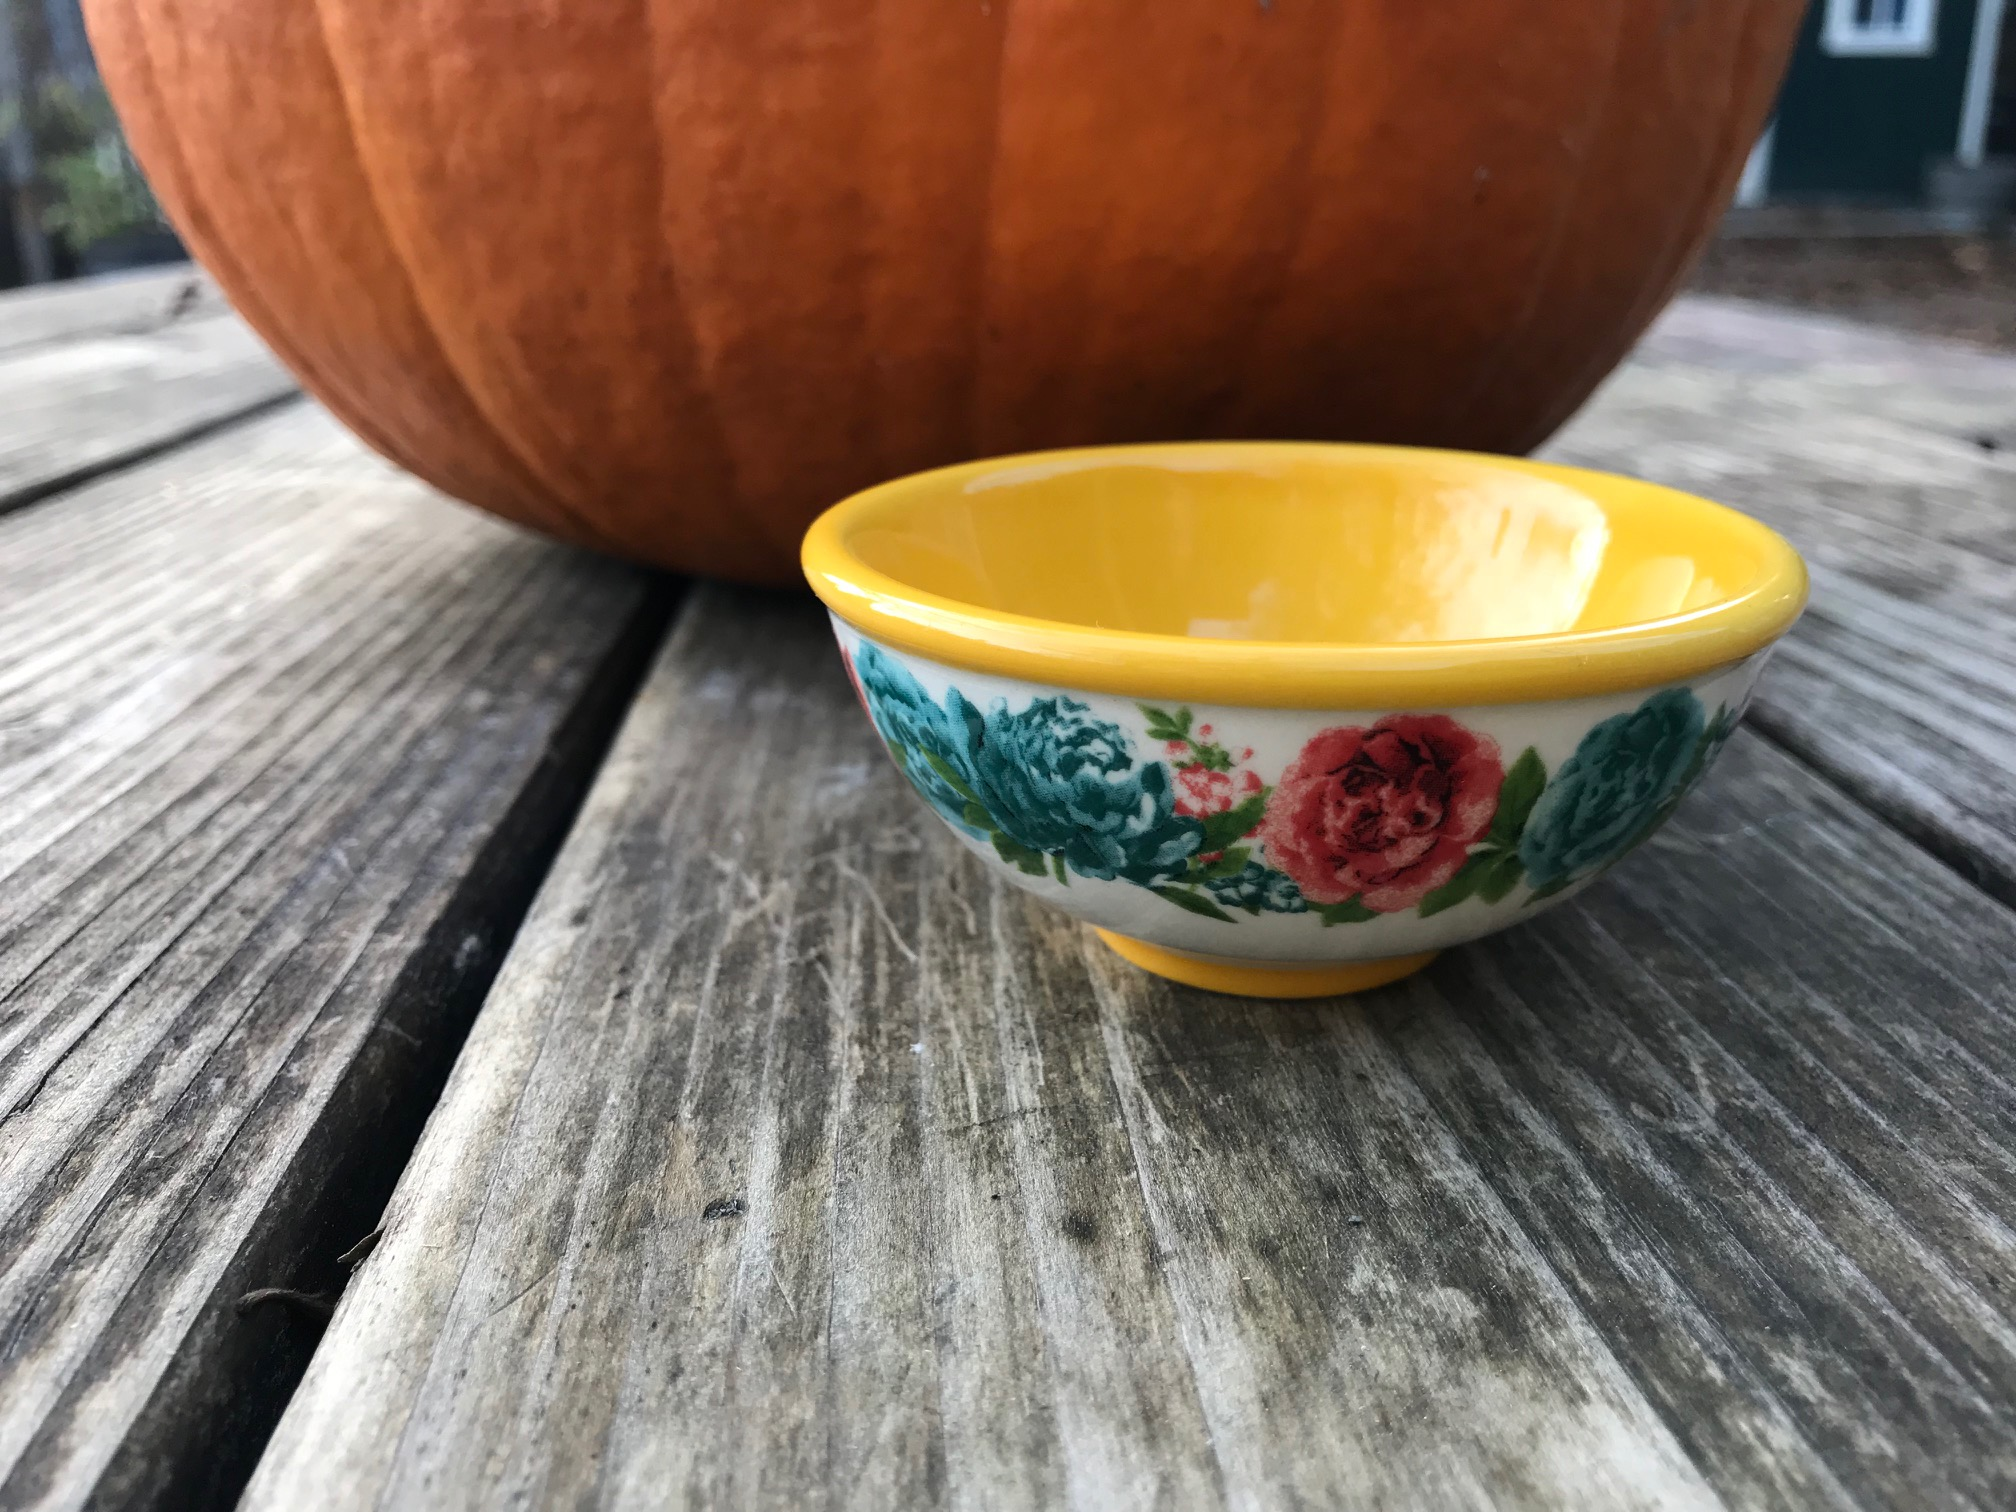 Pioneer Woman Blossom Jubilee / Gold Dipping Bowl: as high as 951 ppm Lead